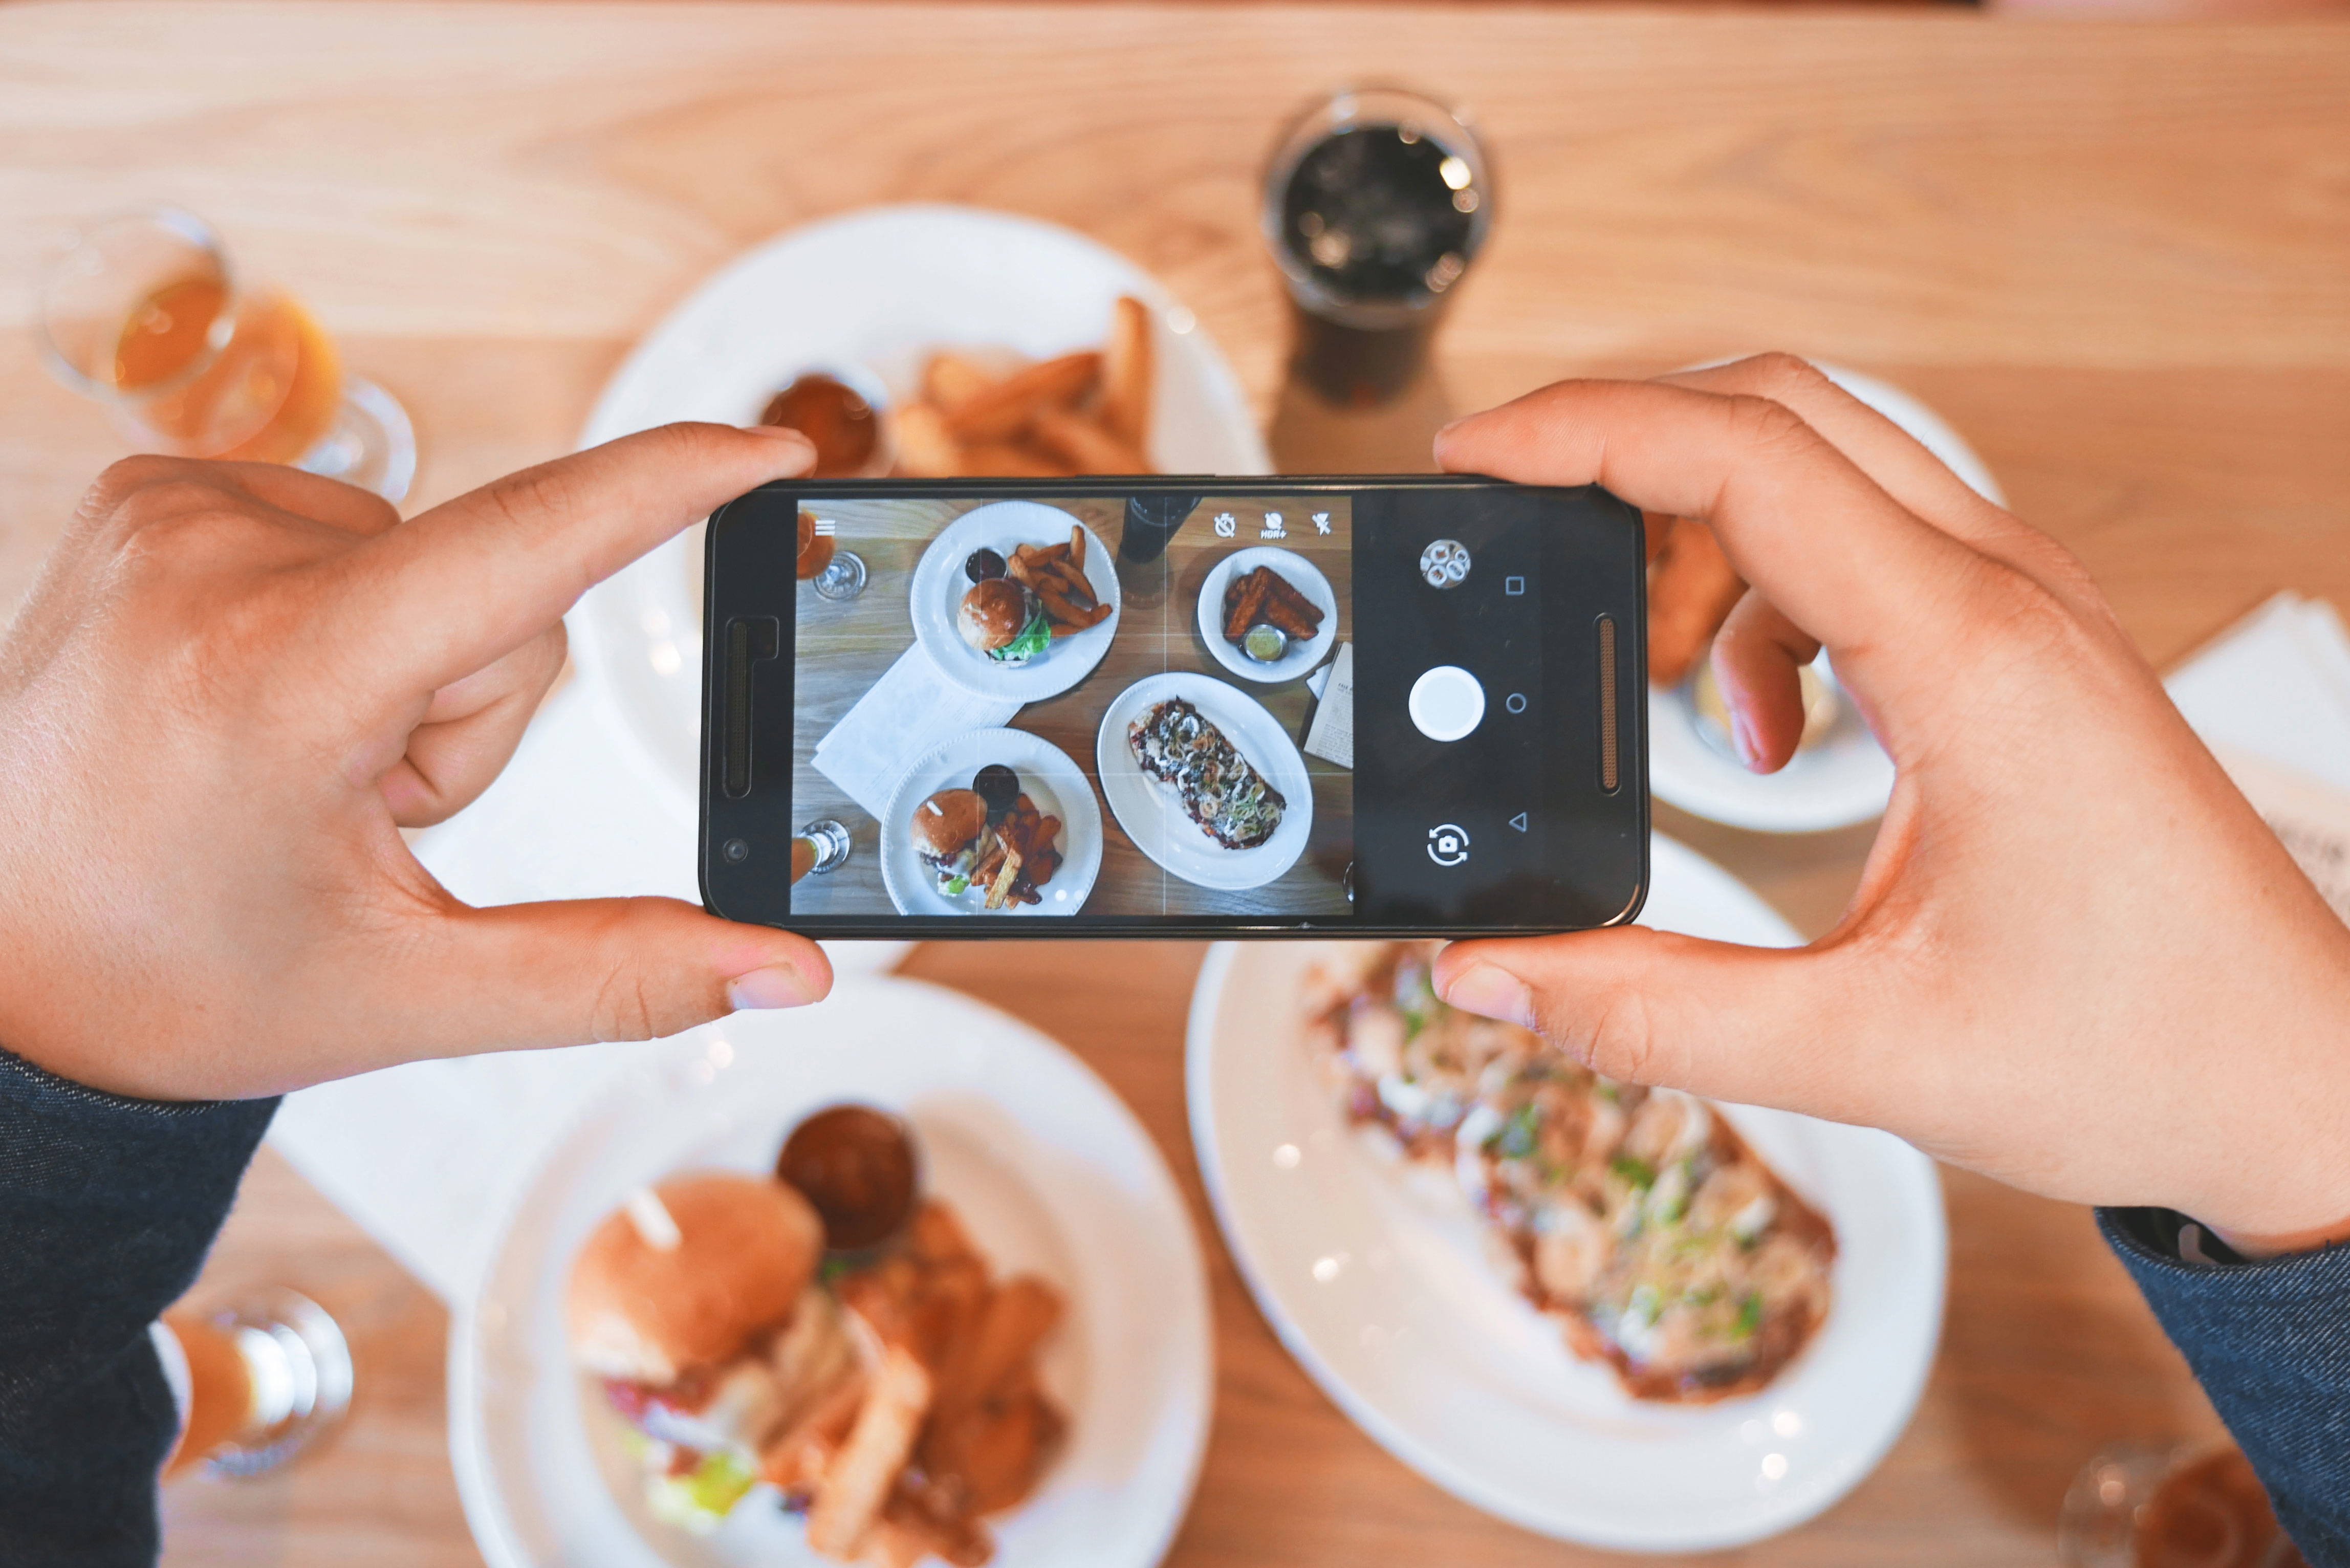 Instagram Will Be Turning To Ads In Their Stories For Enhanced User Experience